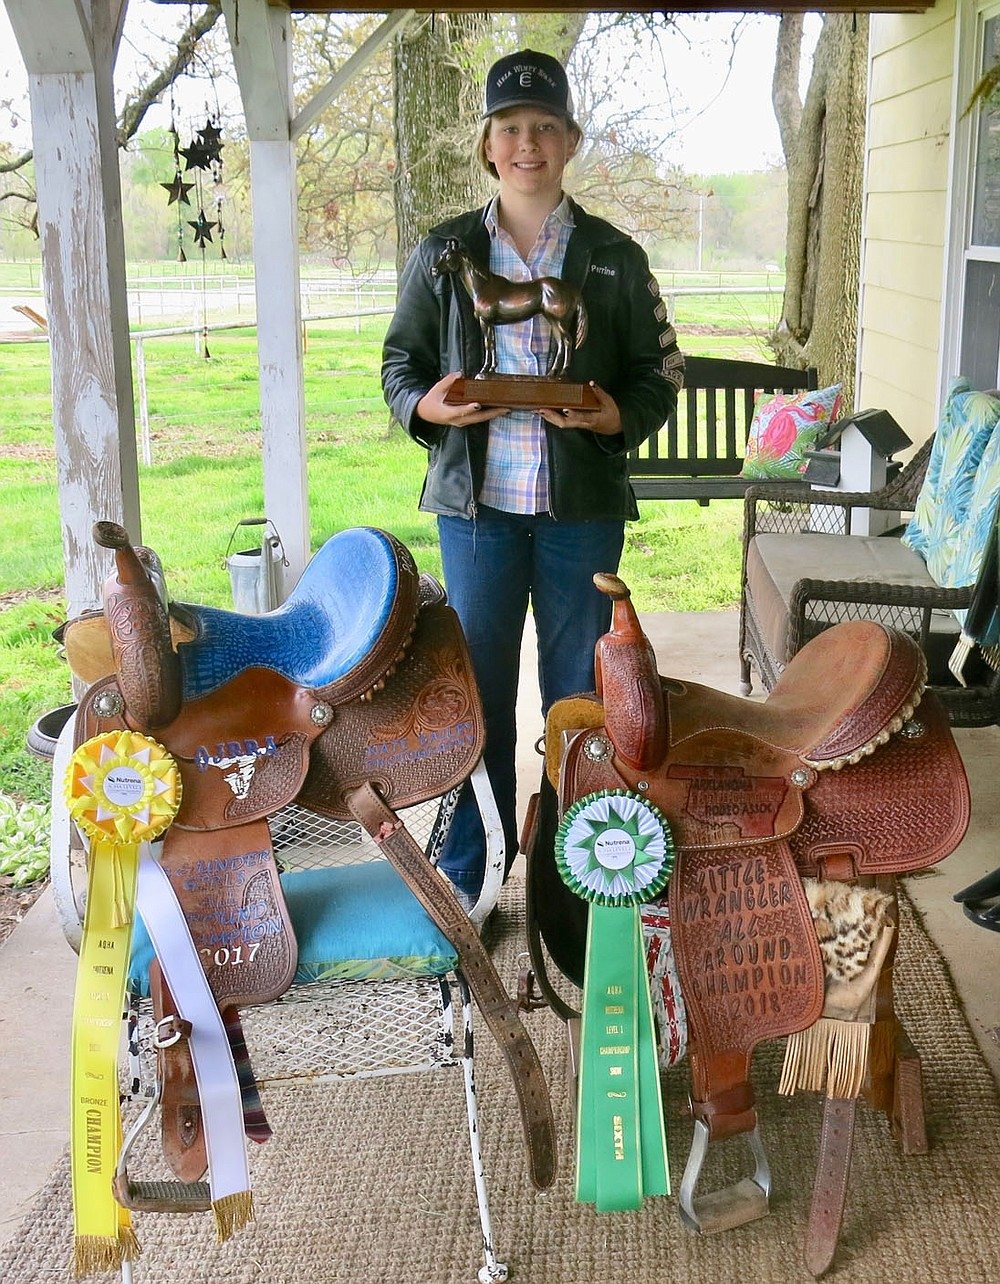 Westside Eagle Observer/SUSAN HOLLAND Landyn Perrine shows off some of the awards she has won in her rodeoing career, including trophy saddles for 2017 all-around champion in the Ozark Junior Rodeo Association and 2018 Little Wrangler all-around champion and ribbons won at the 2020 American Quarter Horse Association World Show in Oklahoma City. She is holding the bronze trophy she earned for placing third in the world in poles at the AQHA show.